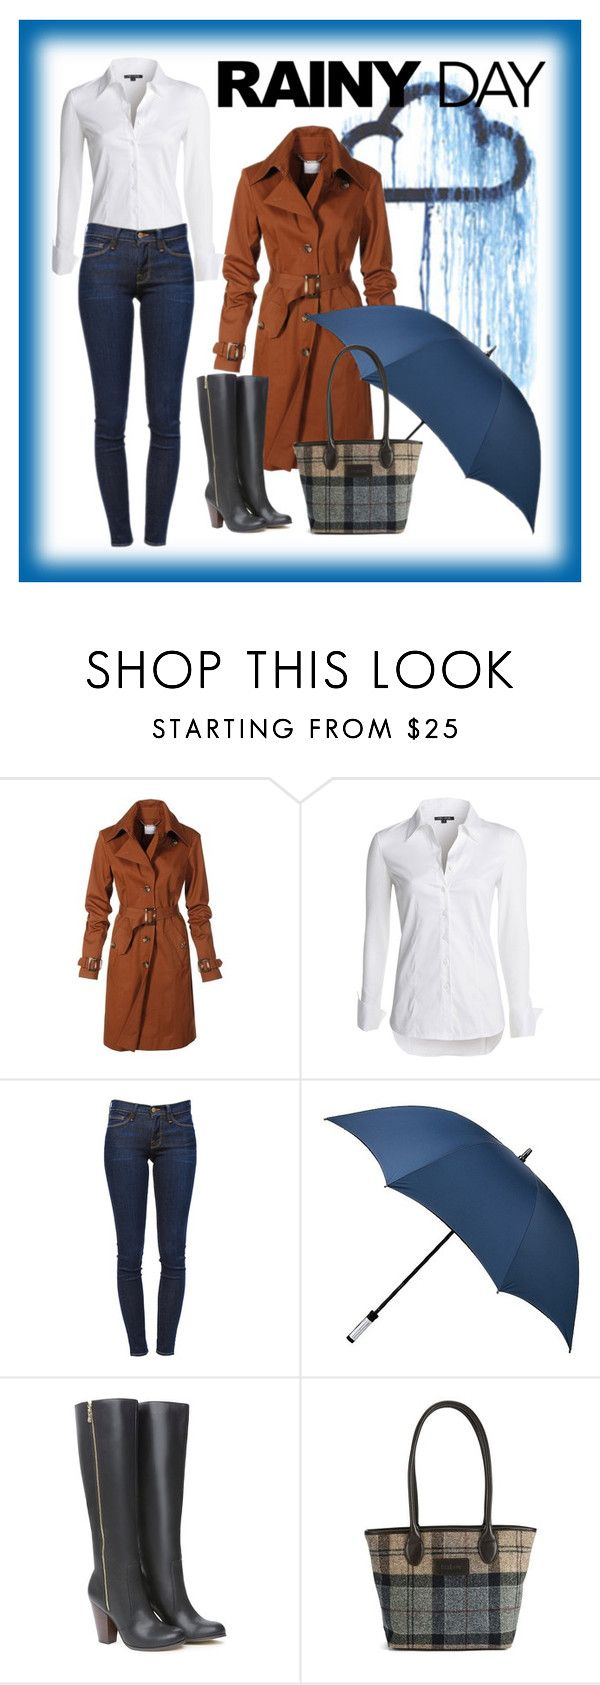 """""""Rainy Day"""" by mrseclipse ❤ liked on Polyvore featuring NIC+ZOE, Frame Denim, Target, Bebe, Barbour and rainydaystyle"""